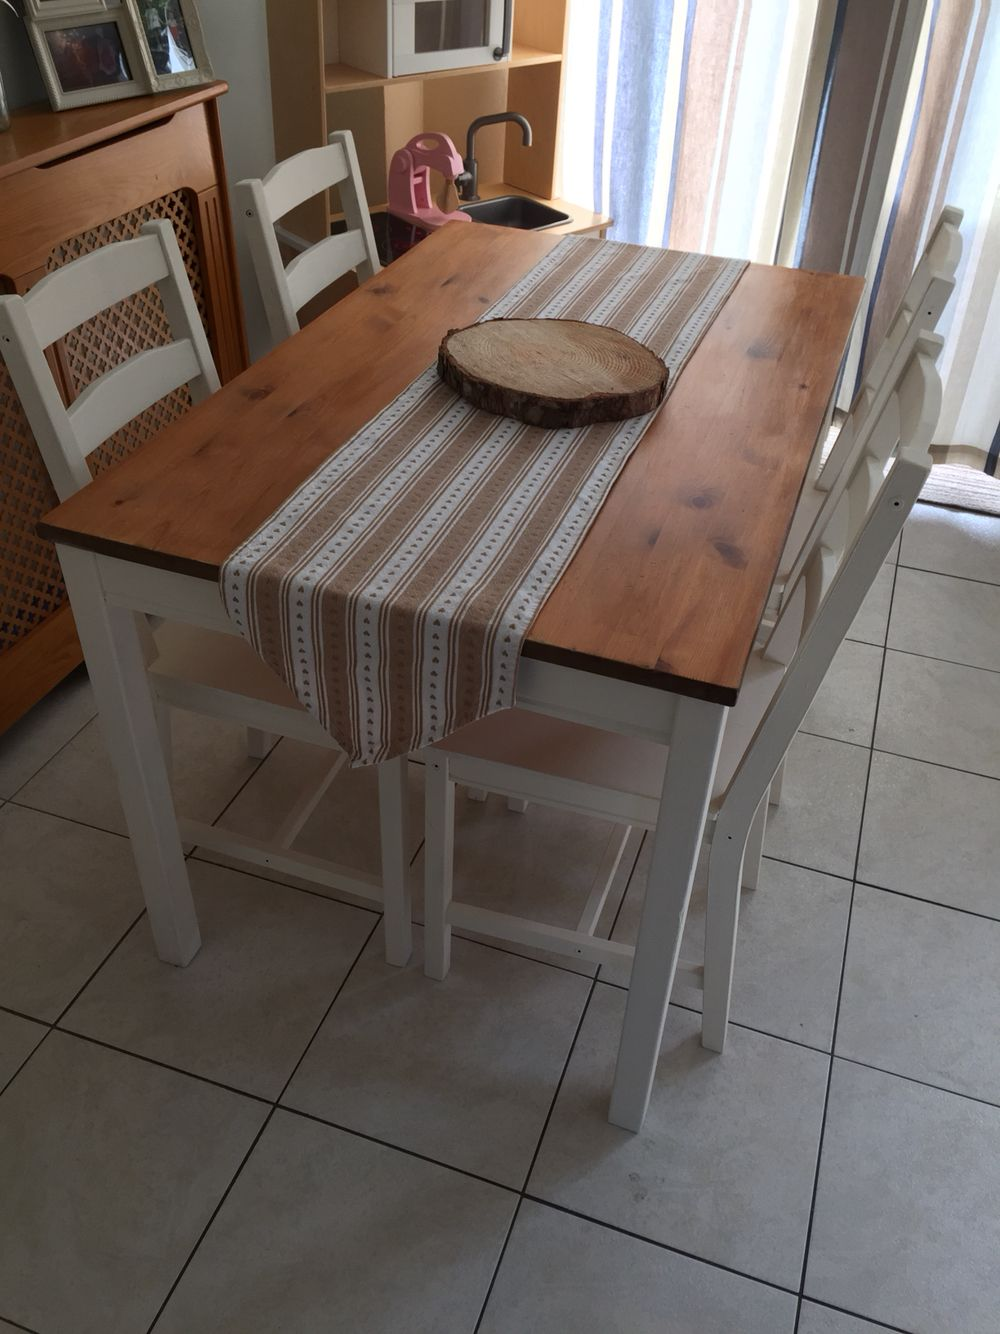 IKEA Jokkmokk Dining Table And Chairs Painted In Annie